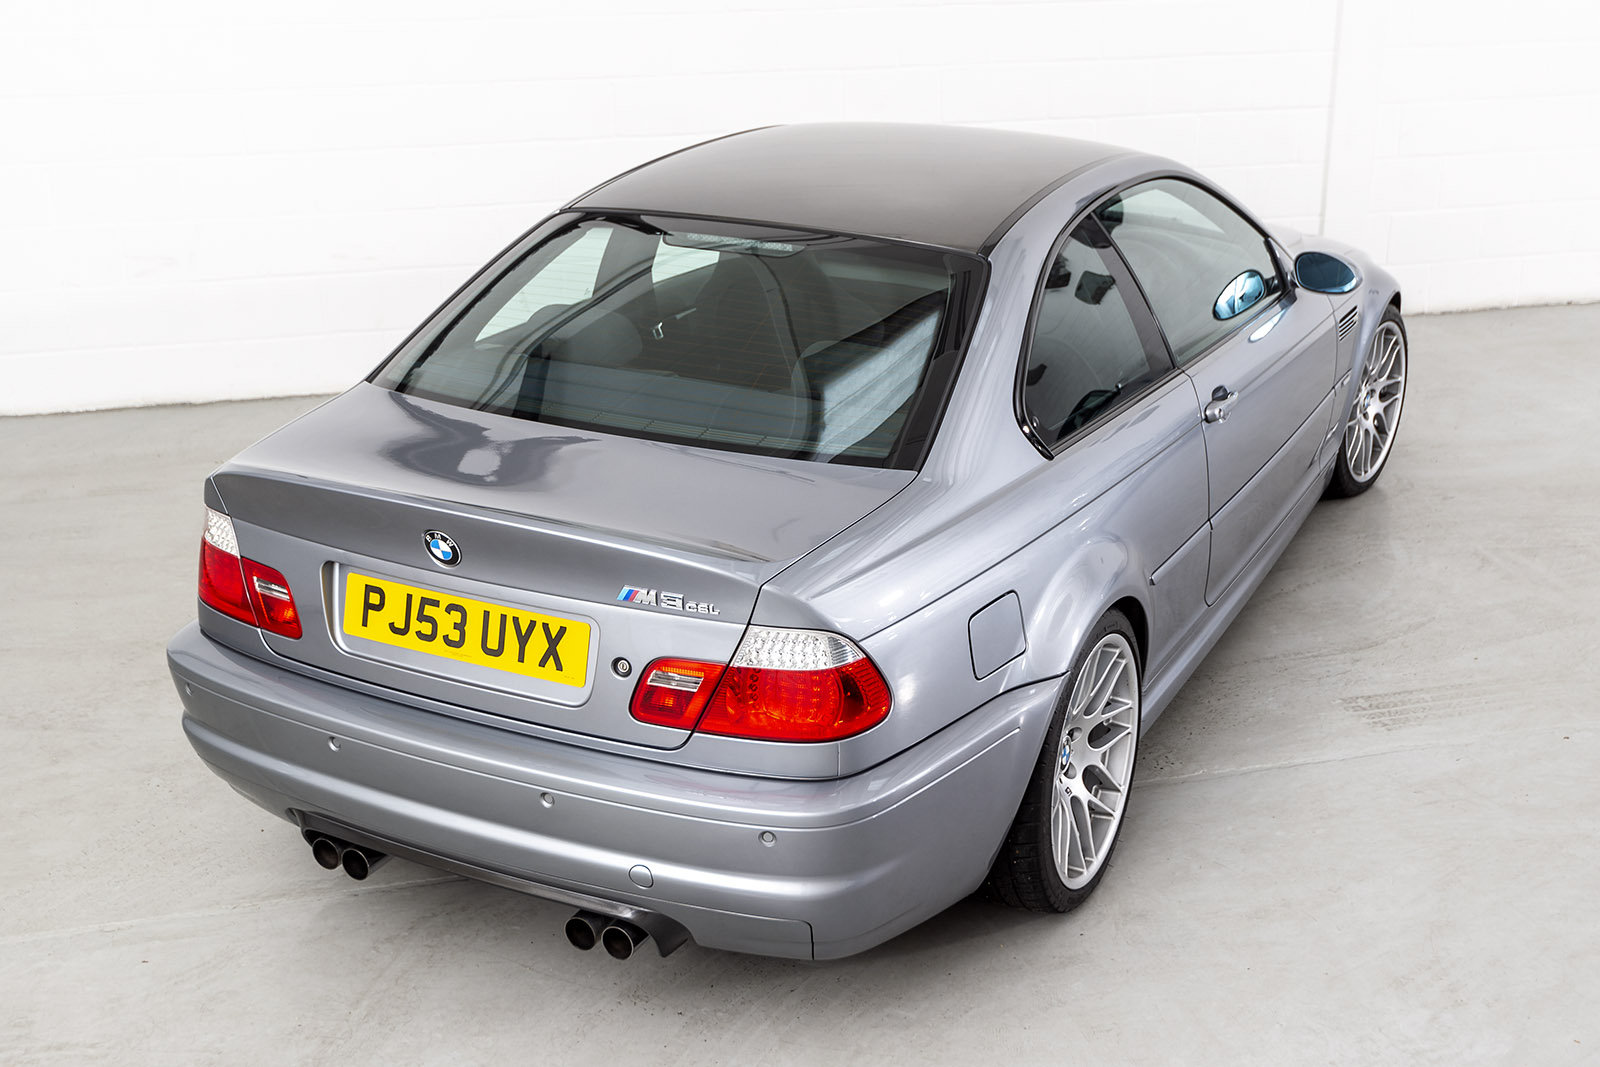 2003 BMW M3 E46 CSL For Sale (picture 3 of 6)